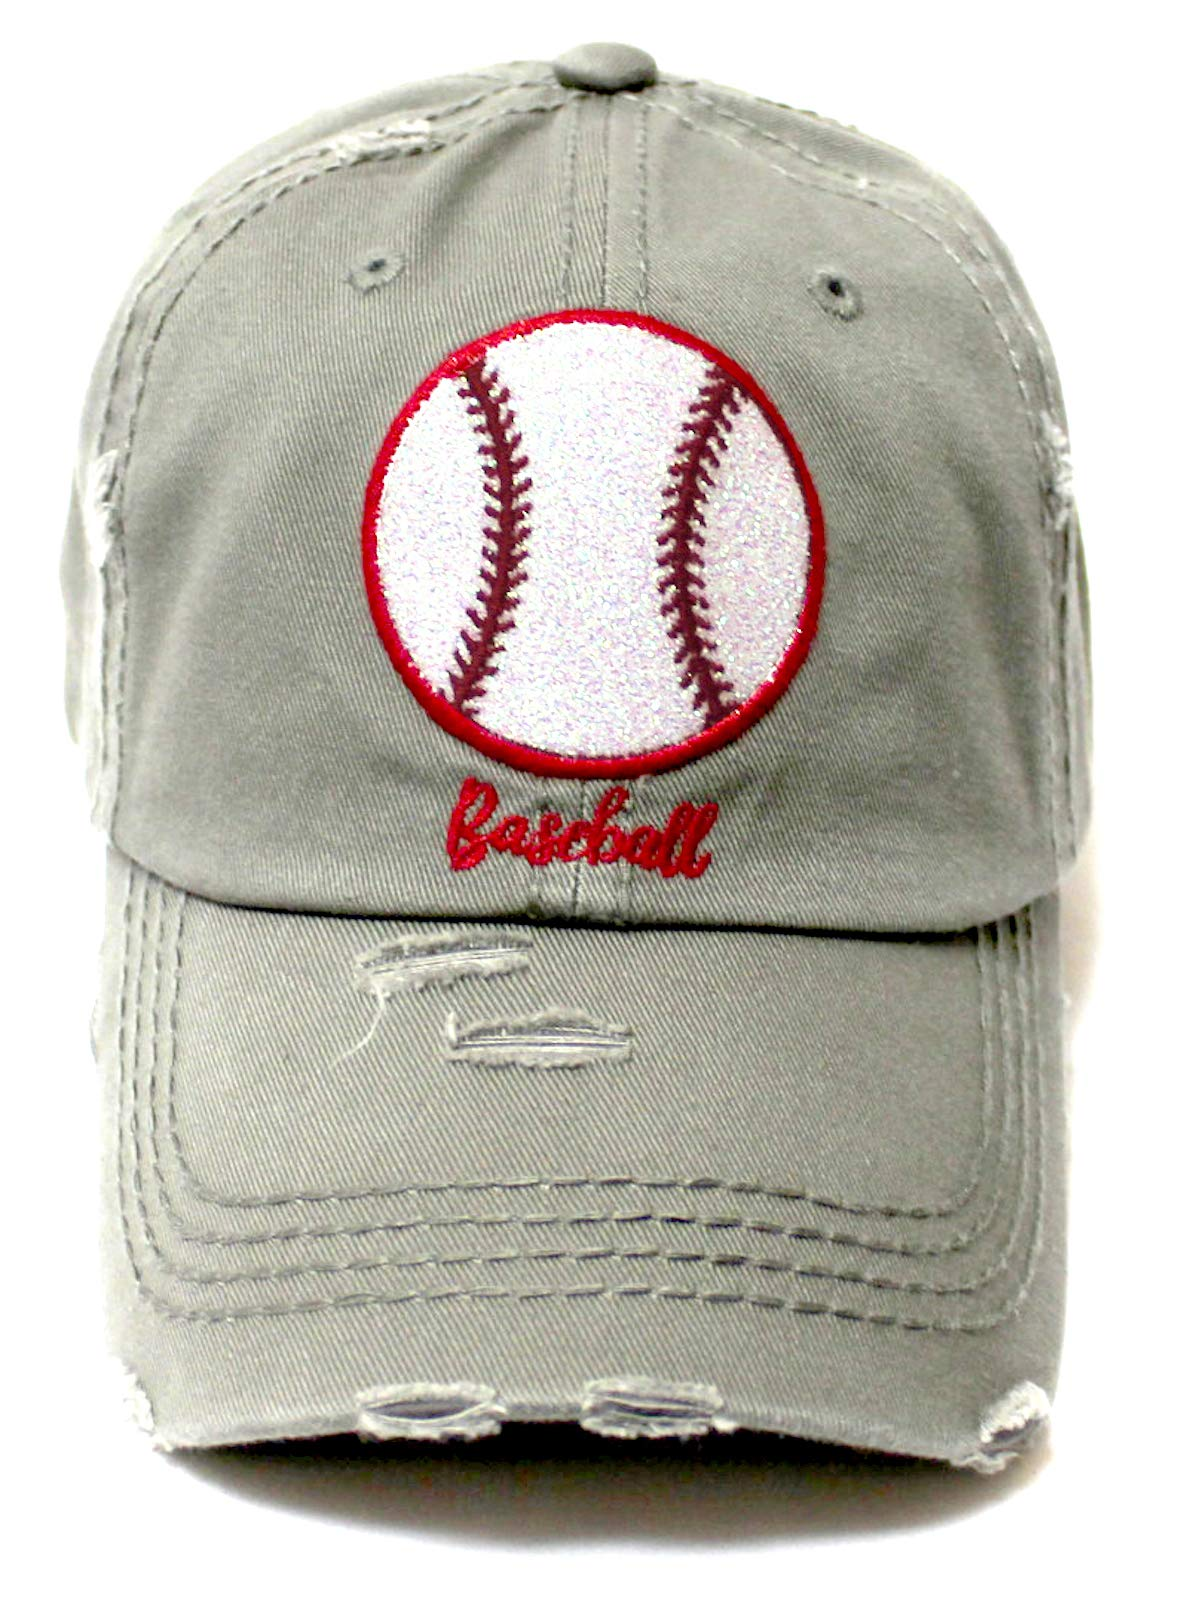 Distressed Baseball Hat Sparkle Ball Embroidery Baseball Monogram Vintage Hat, Moss Grey - Caps 'N Vintage